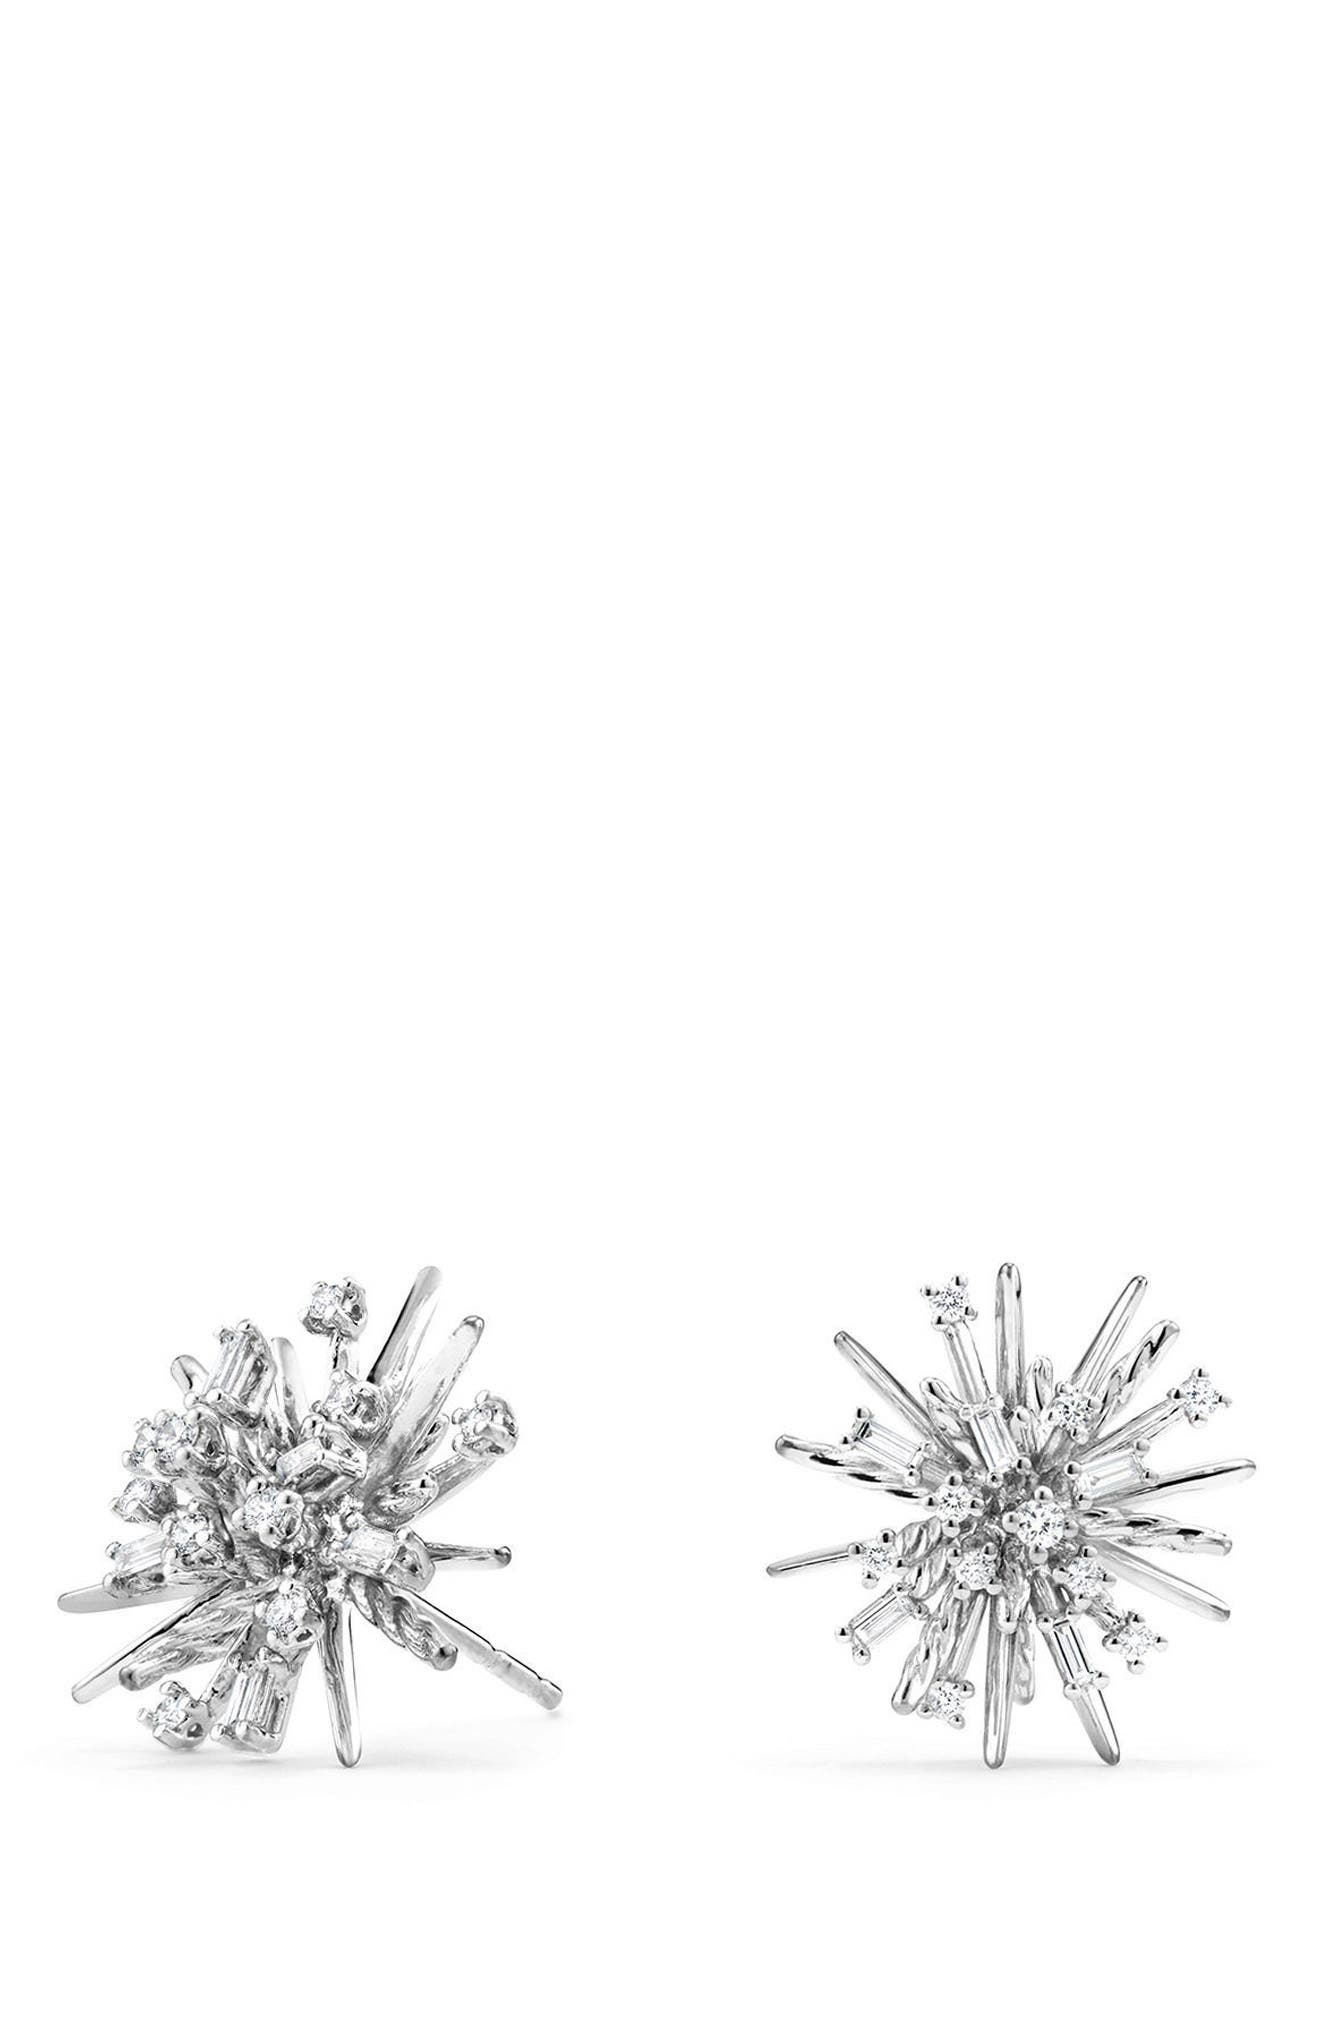 Supernova Stud Earrings with Diamonds in 18K White Gold,                             Main thumbnail 1, color,                             711